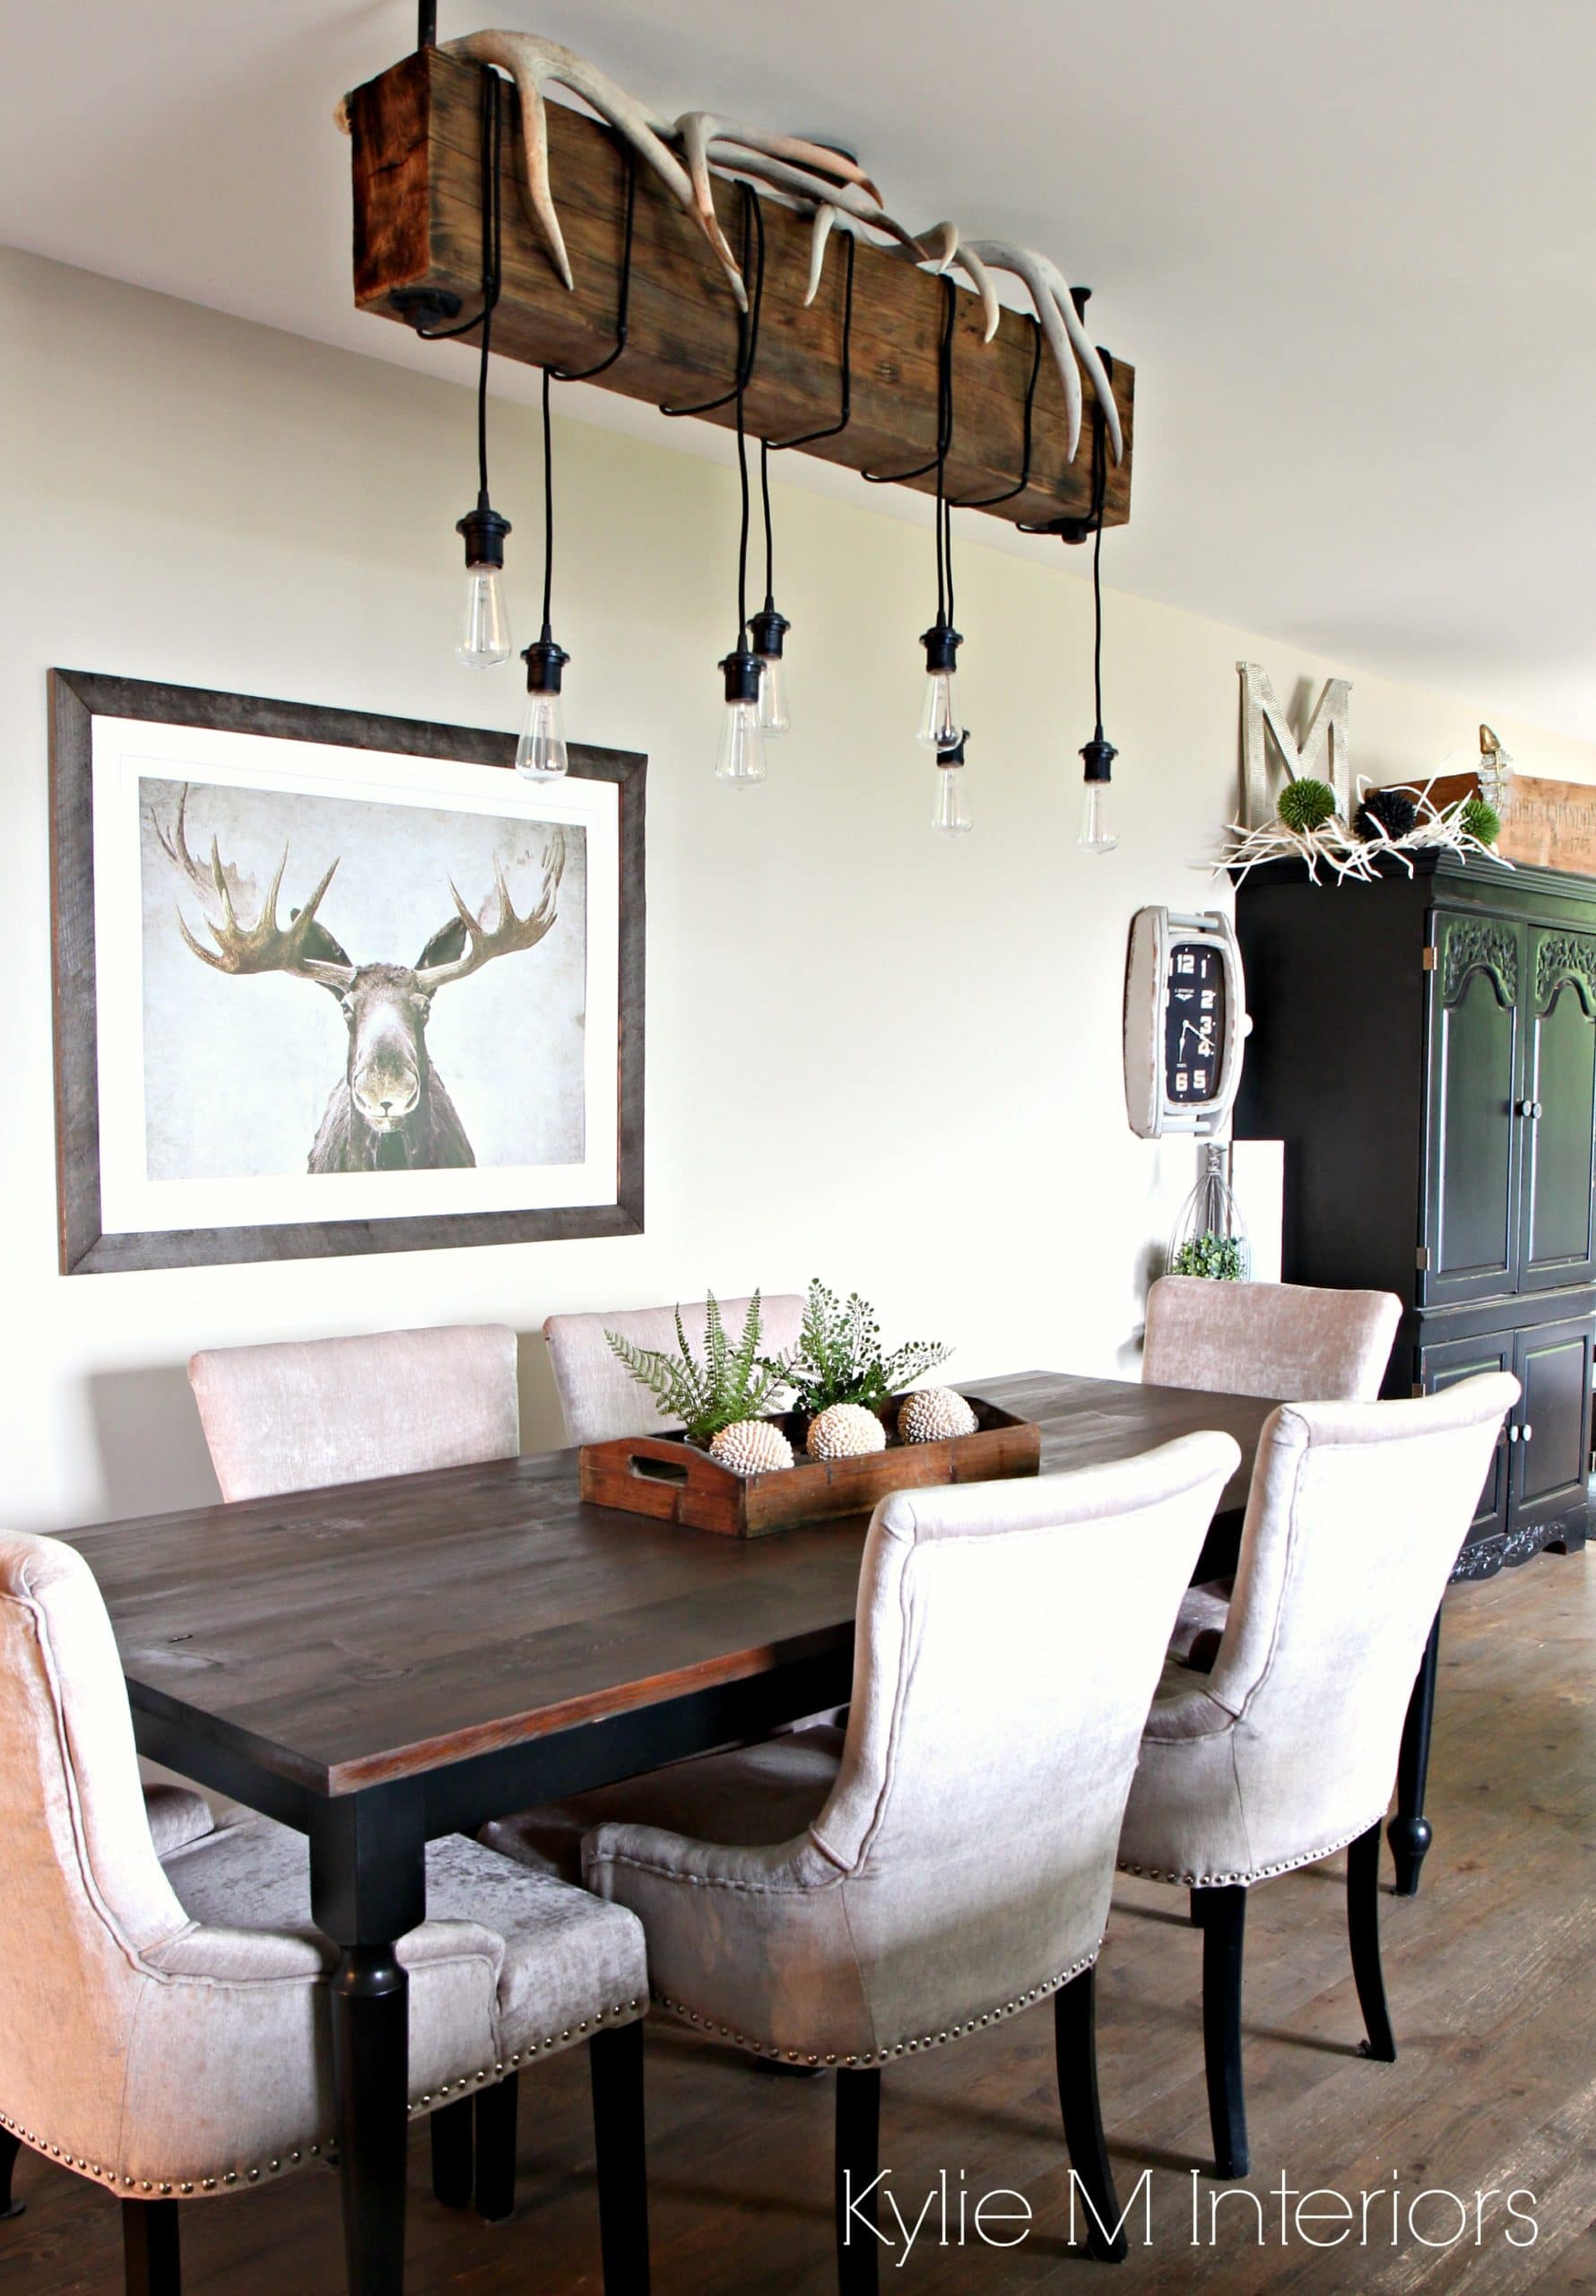 Home Decor For A Hunting With Farmhouse Country Style Rustic Chandelier And Grant Beige Benjamin